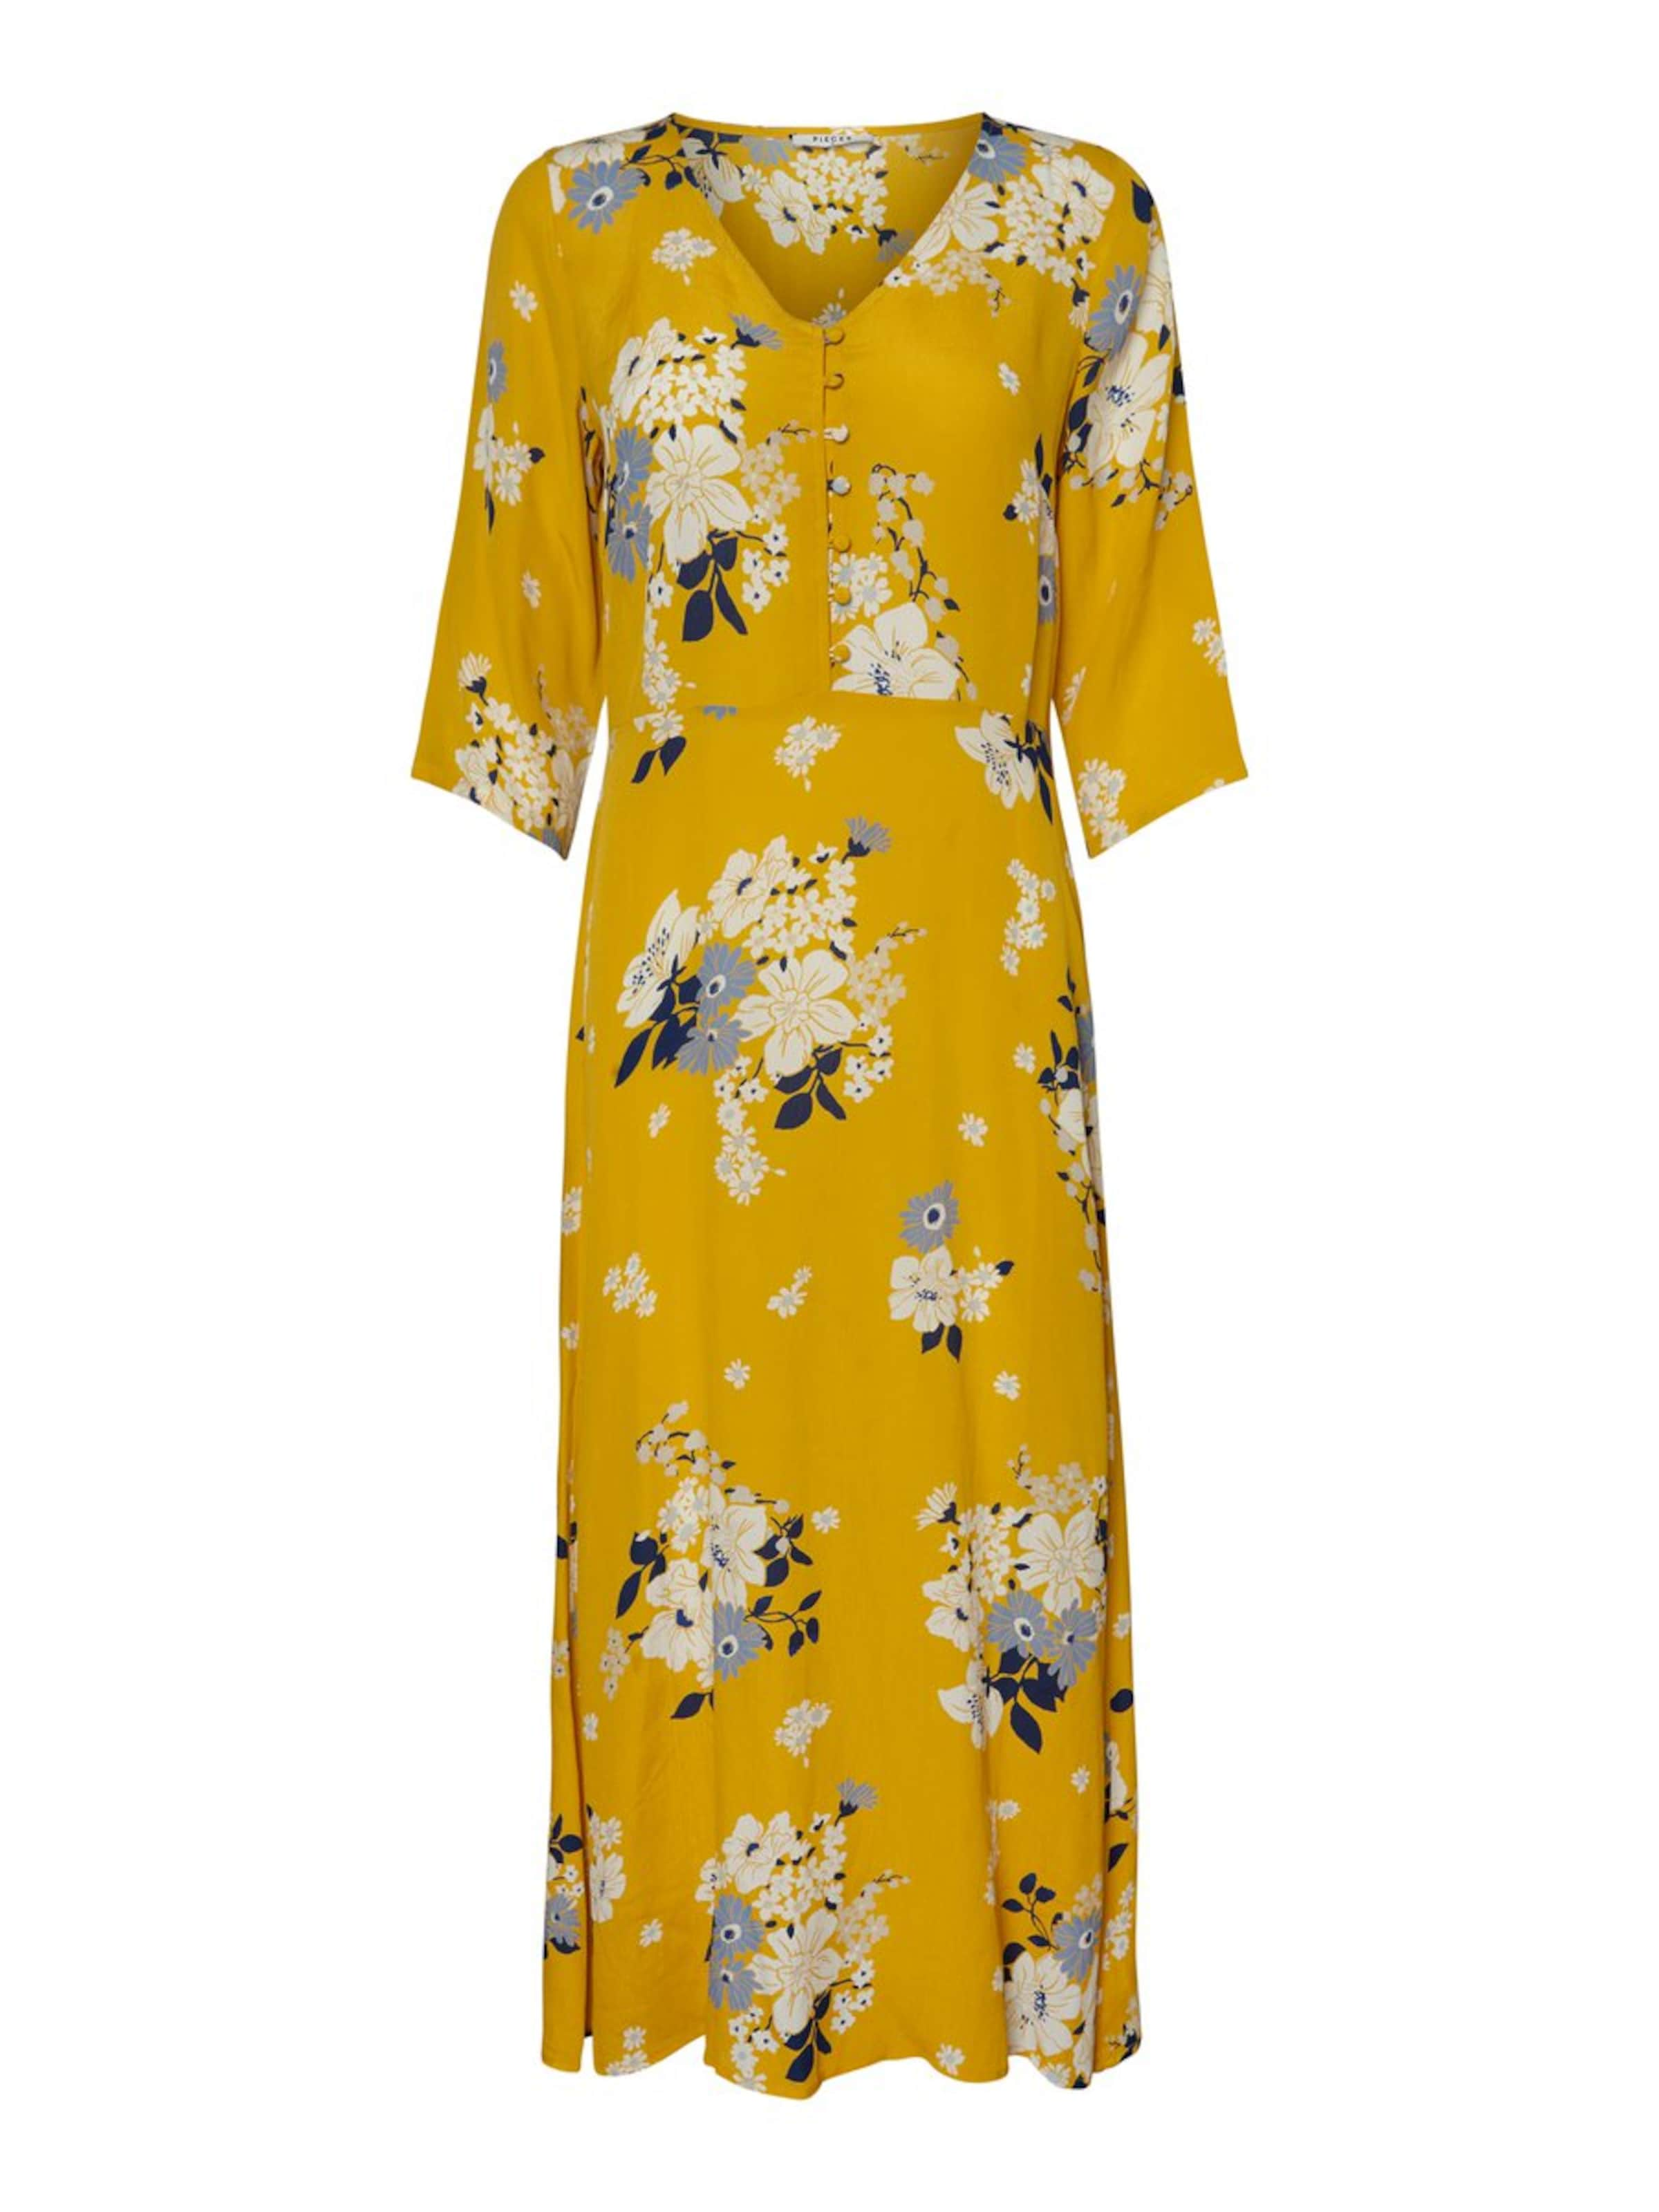 Robe Robe En Jaune En Pieces Pieces Jaune Jaune Pieces En Robe Robe Pieces En vmNn80w